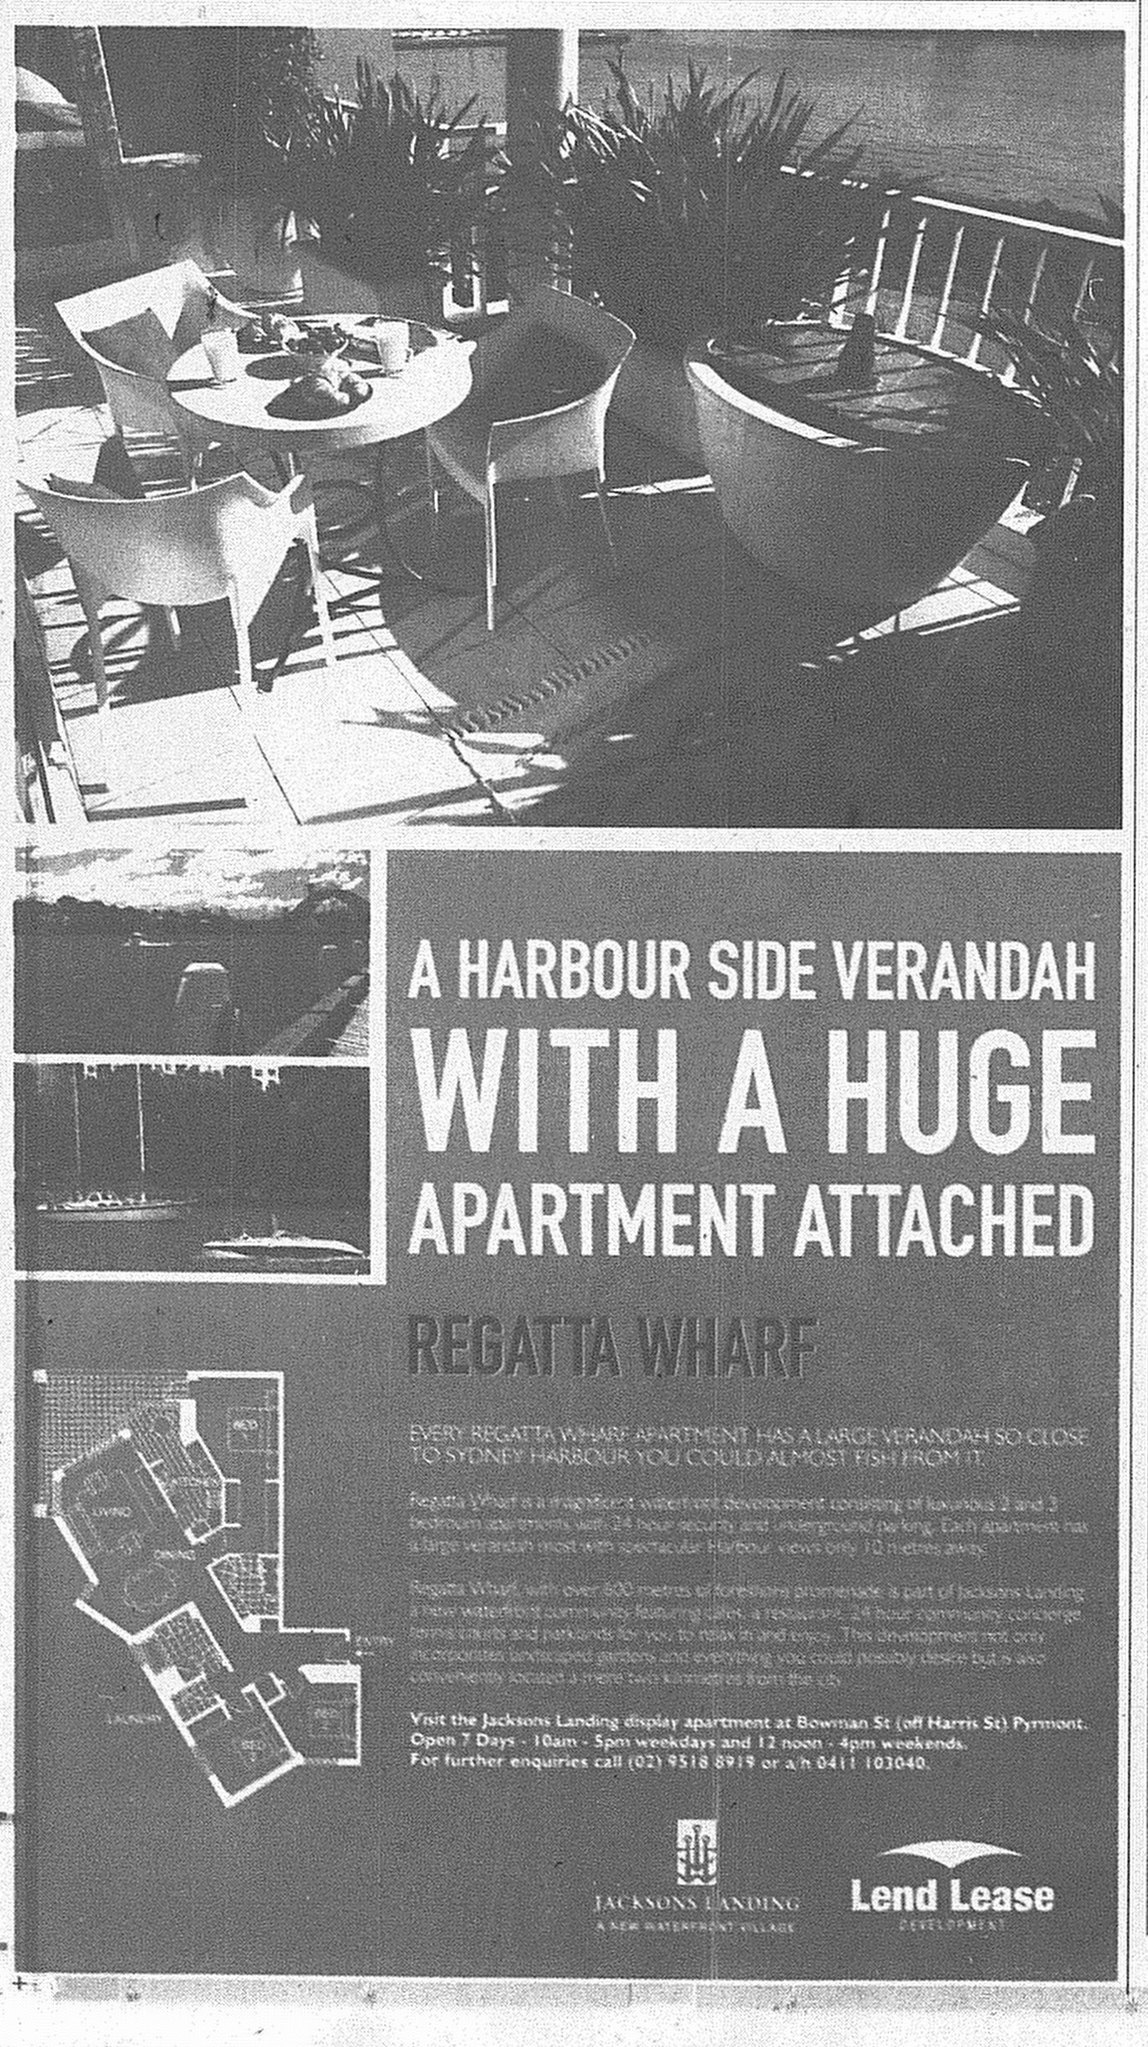 Regatta Wharf Ad June 5 1999 SMH 23RE